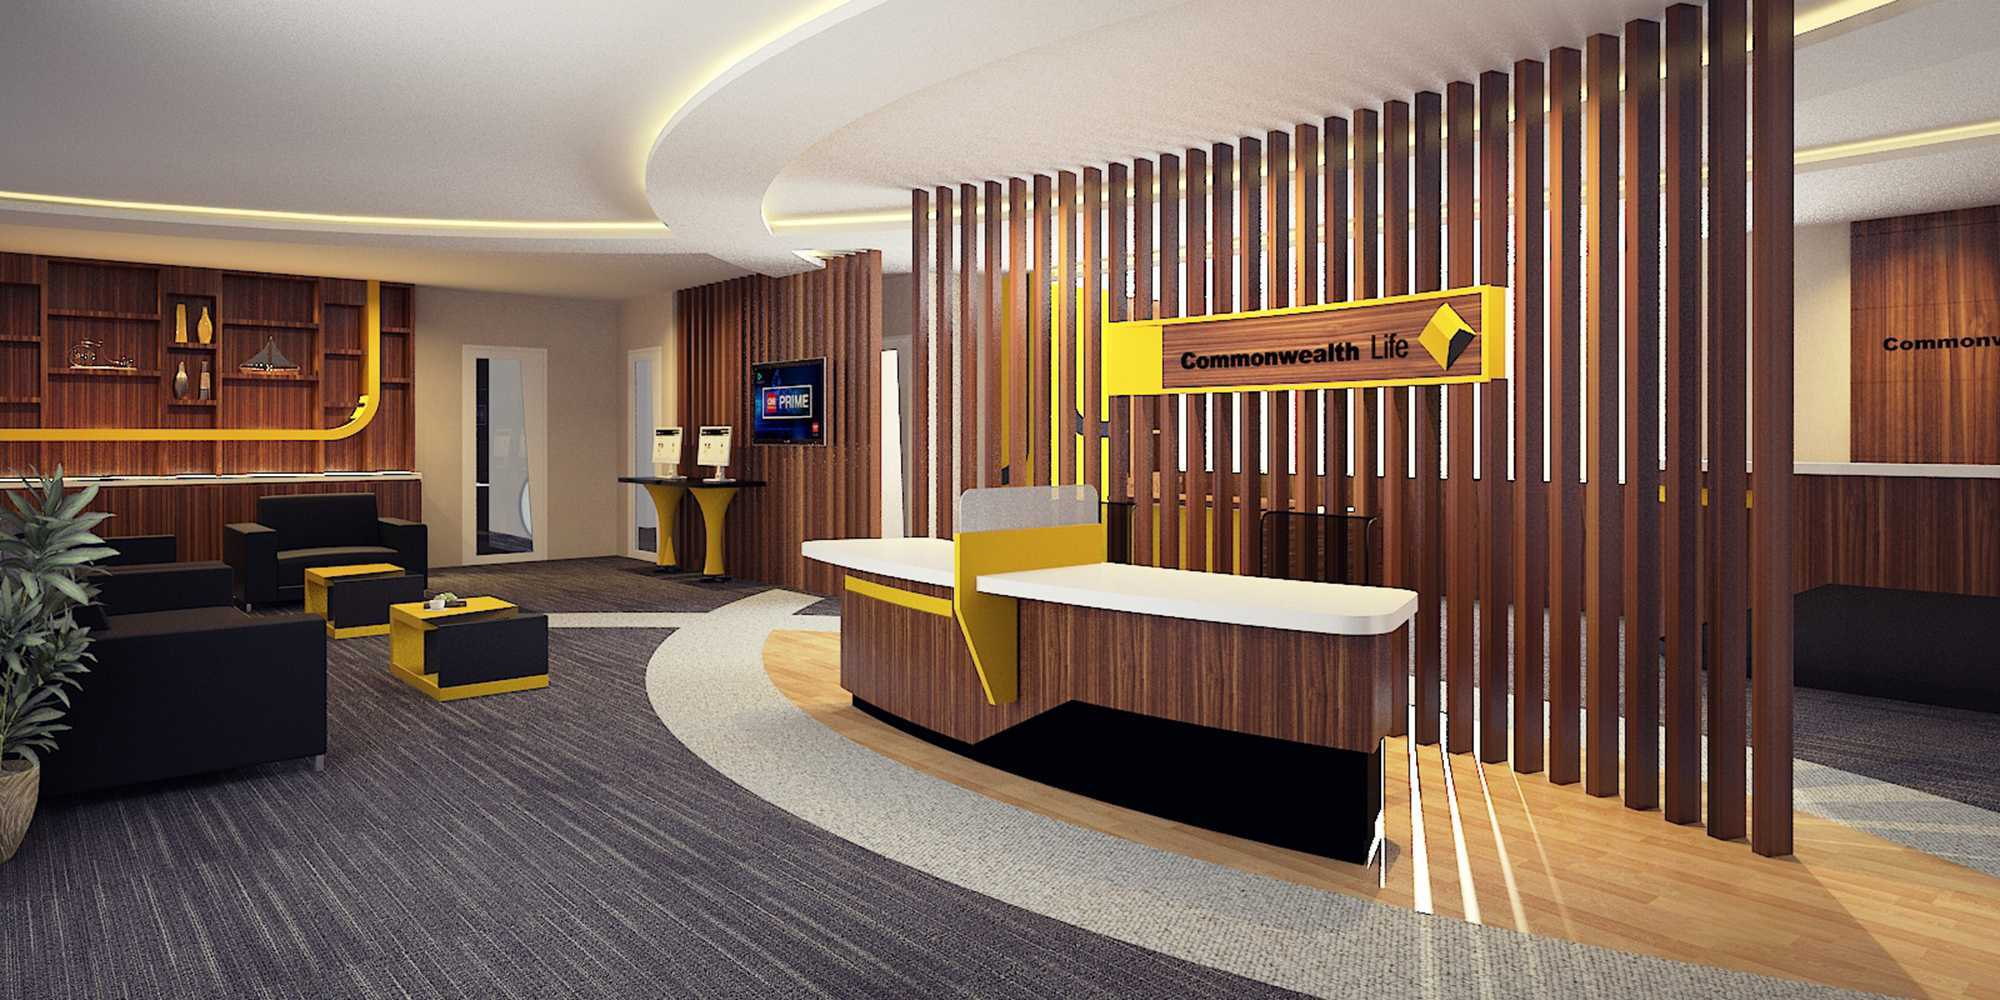 Tb Design Studio Commonwealth Life New Office Jakarta Jakarta Cro & Waiting Room   27723